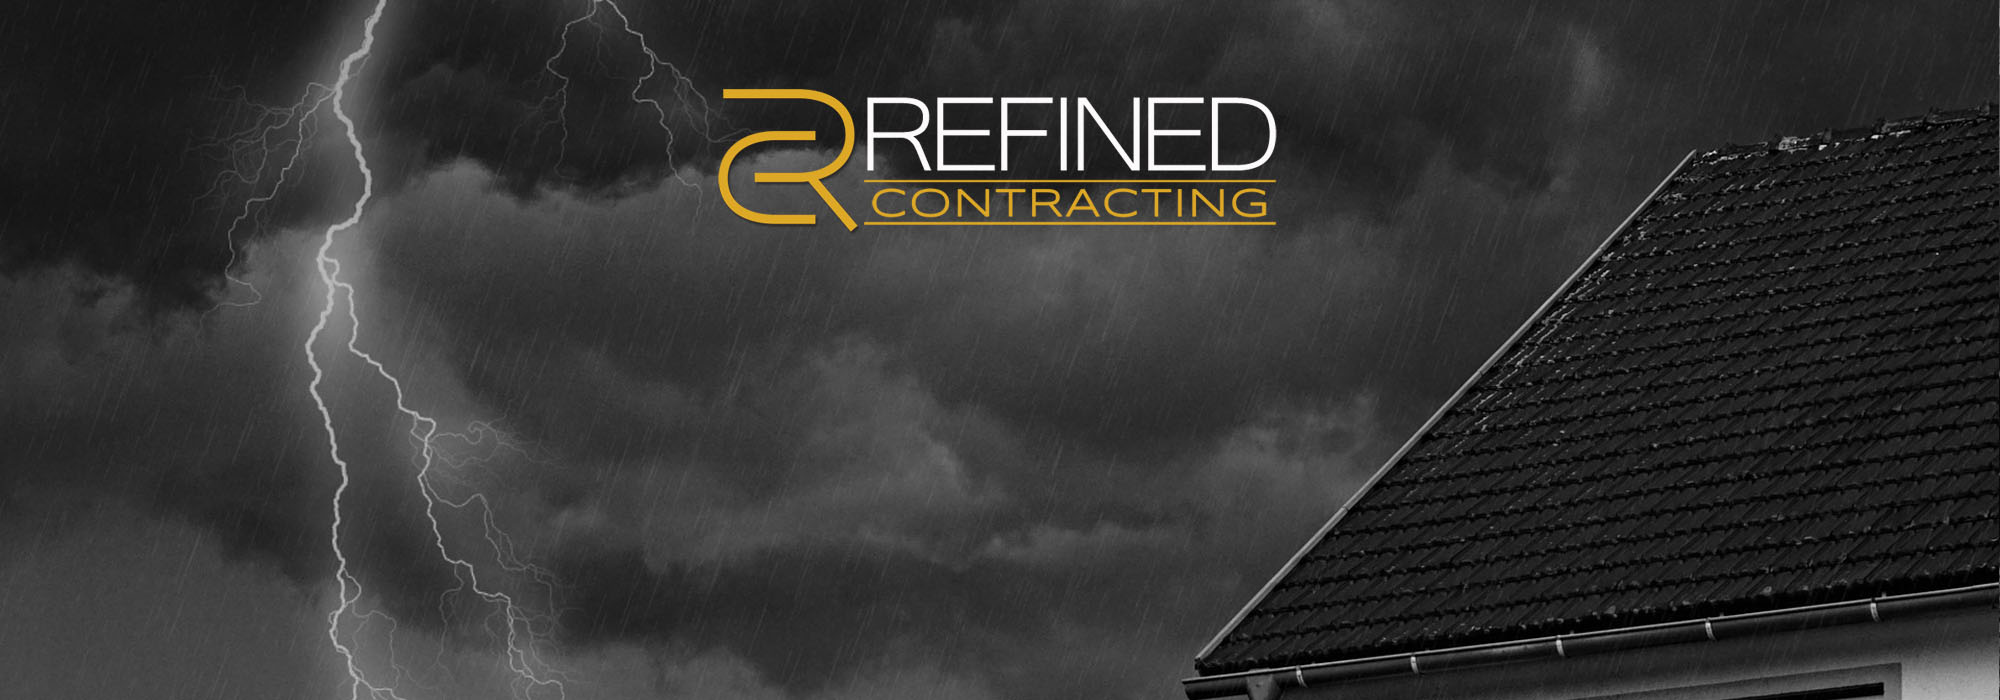 Let Refined Contracting help restore your home after after a storm hits your Minnesota or Colorado home.